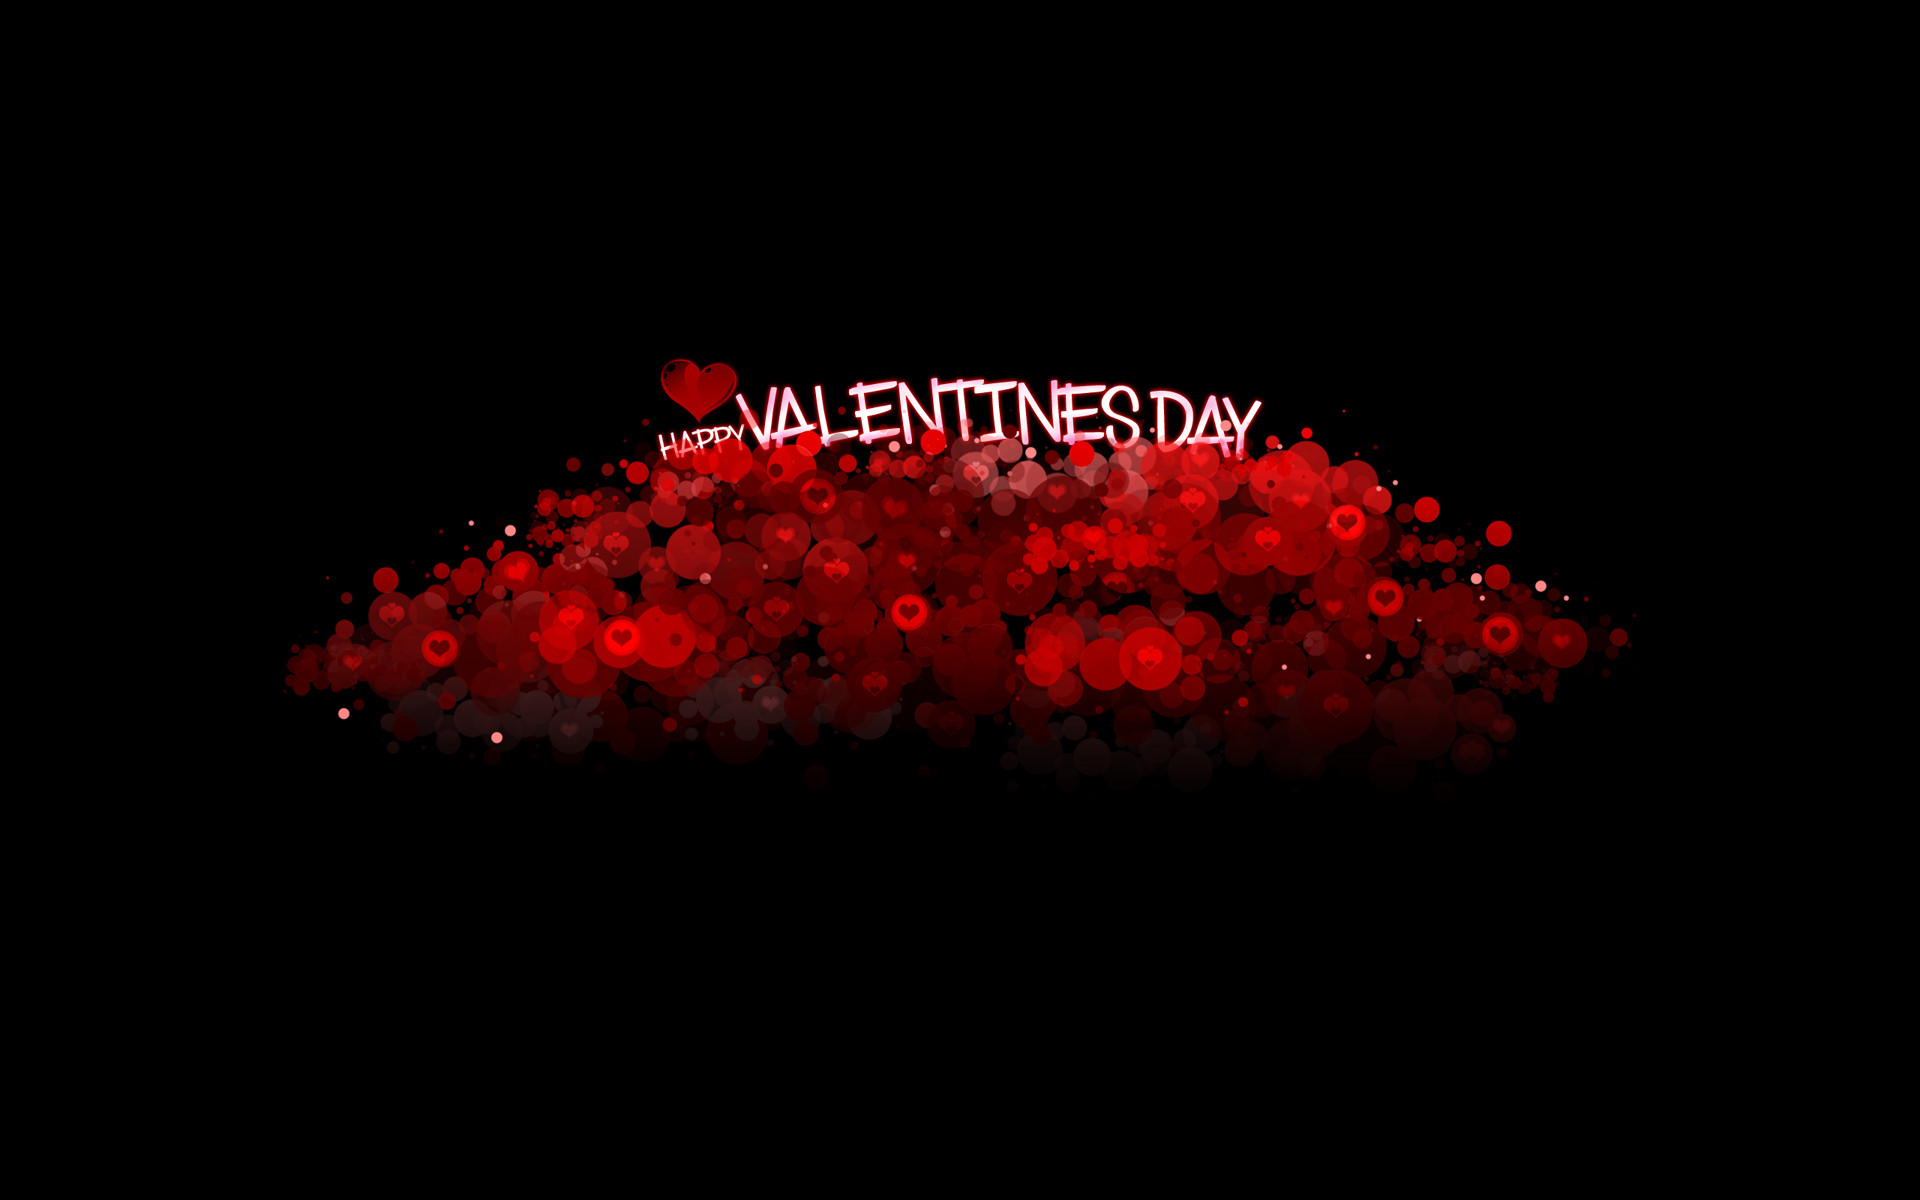 1920x1200 valentines day cool awesome black wallpaper free hd desktop